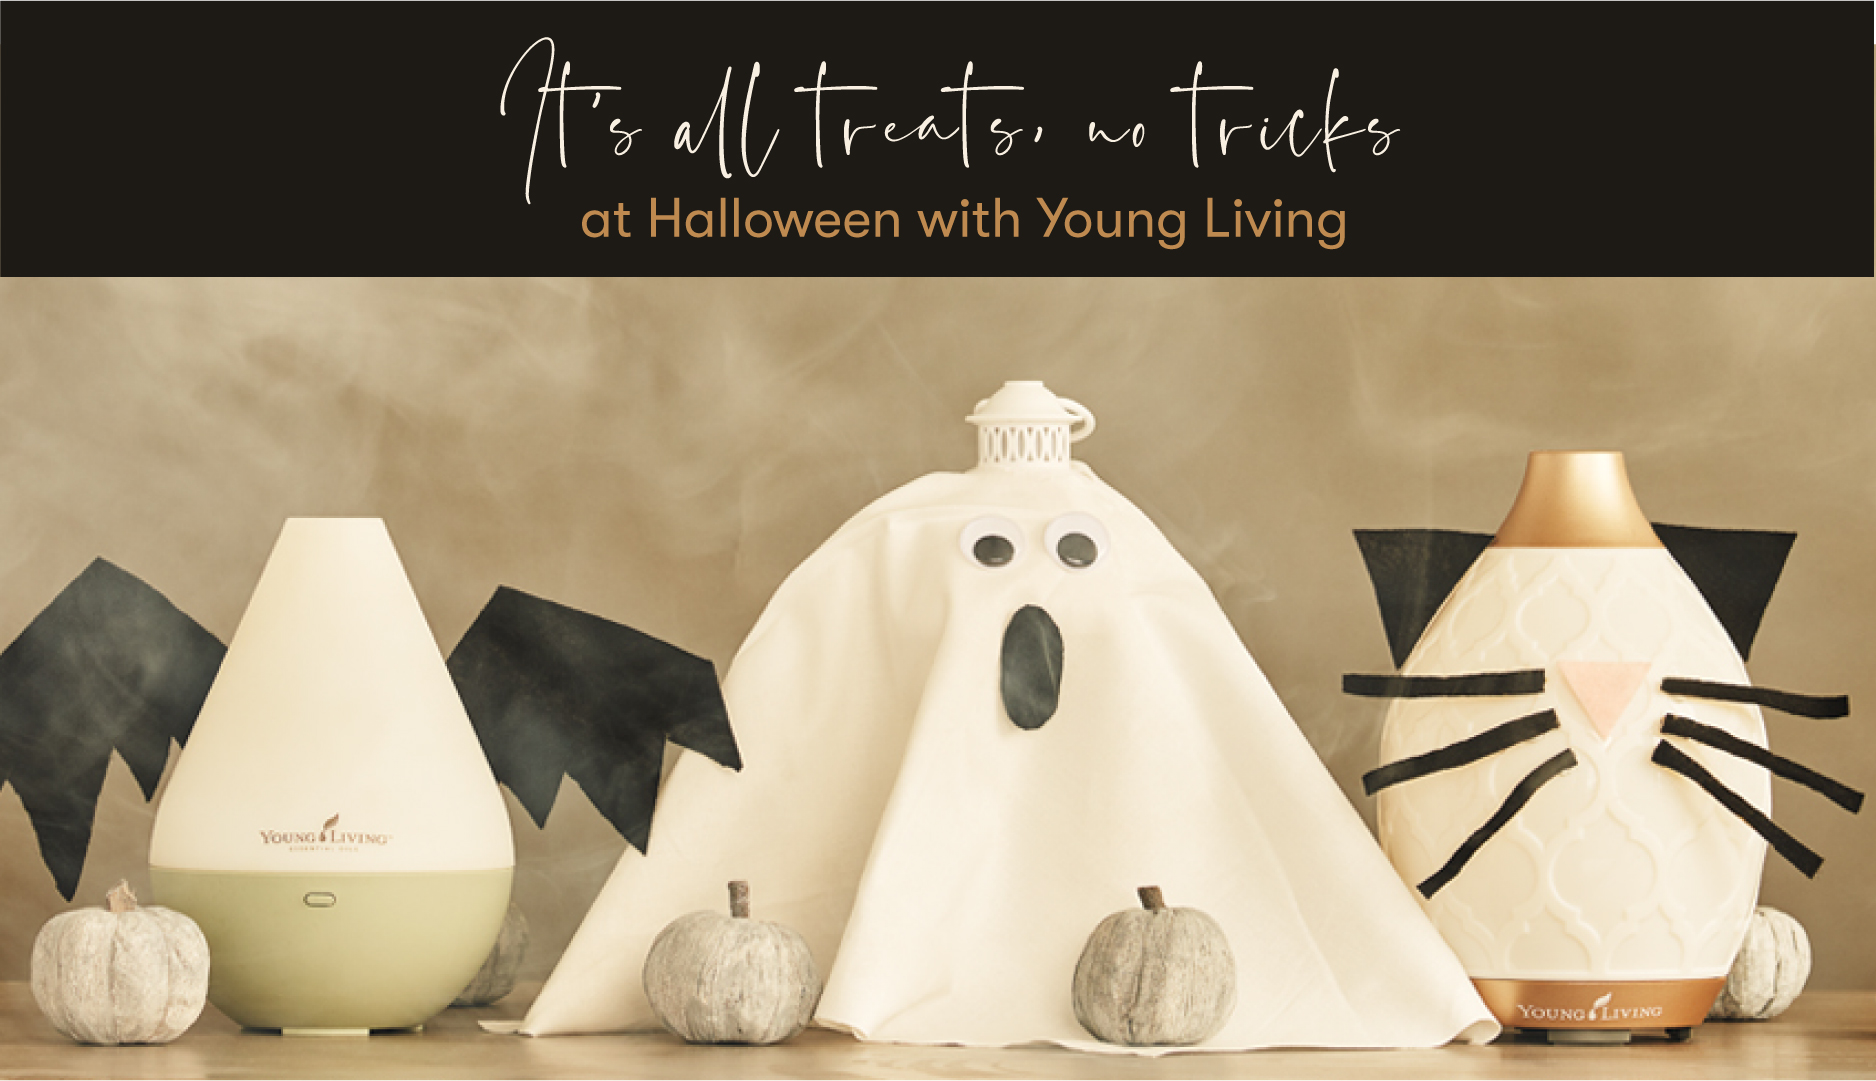 Essential Oil Diffusers with Halloween Costumes